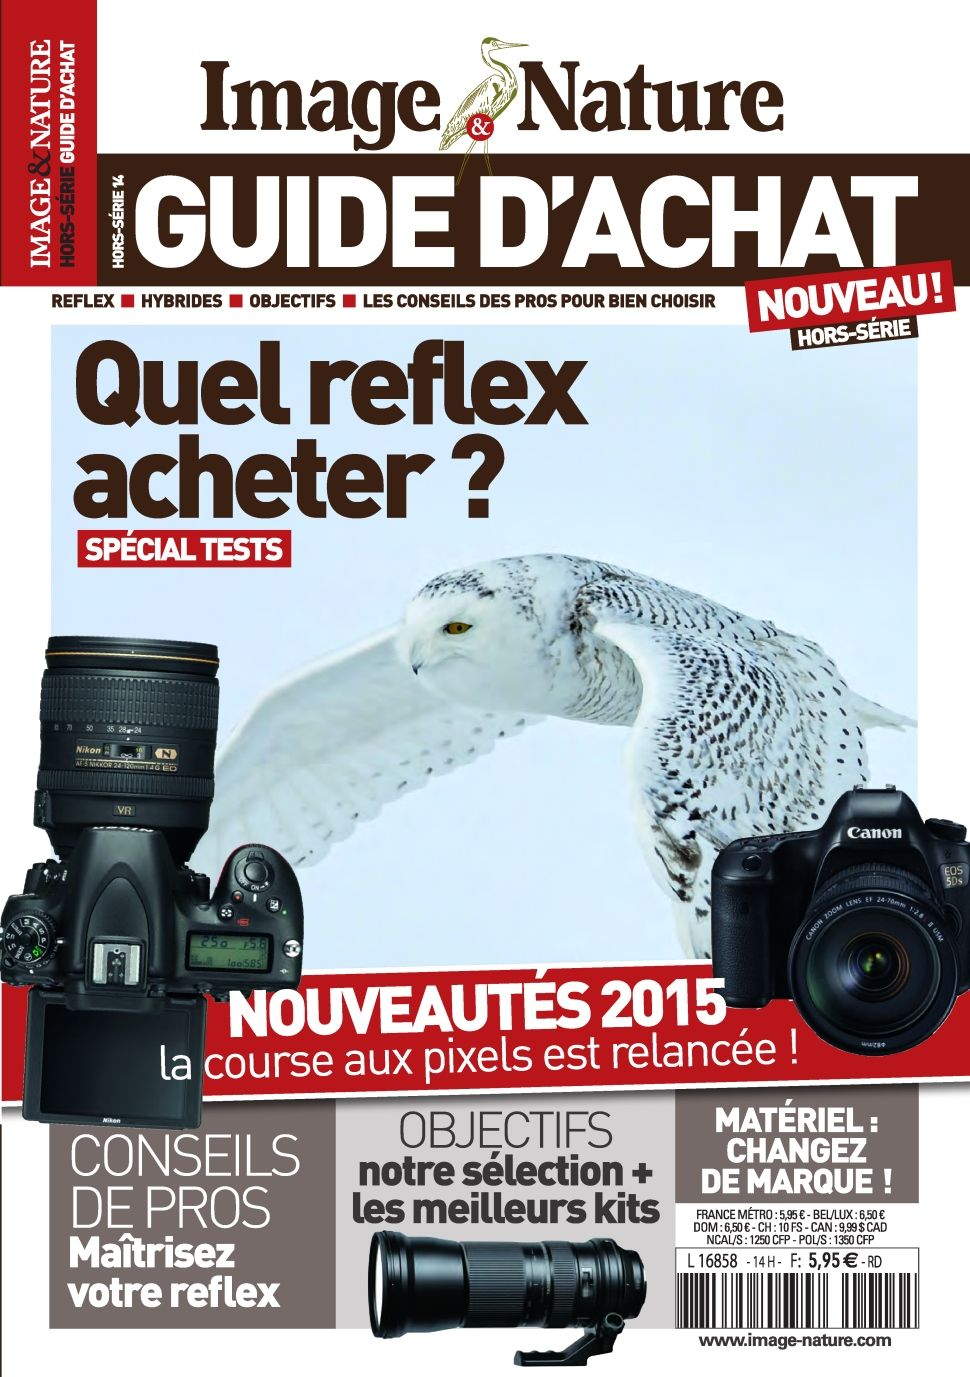 Image & Nature Hors Série 14 - Guide d'achat 2016